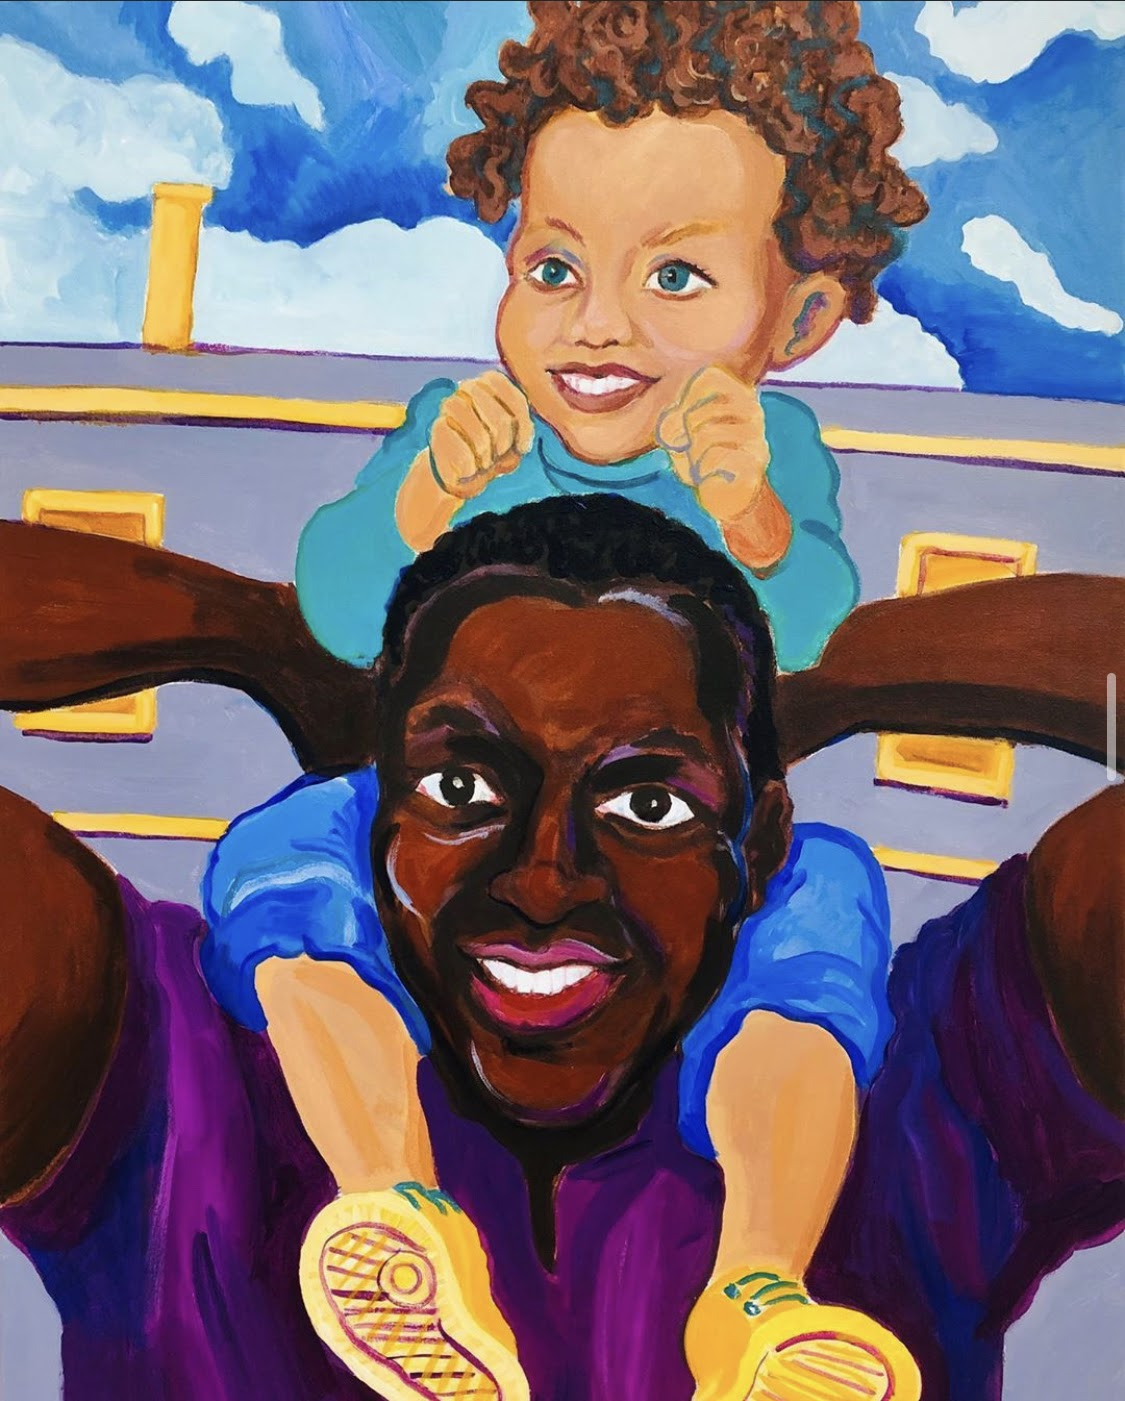 Just as you hold up your child on your shoulders to support them and see a clearer view, support them mentally by providing them the tools to navigate race.